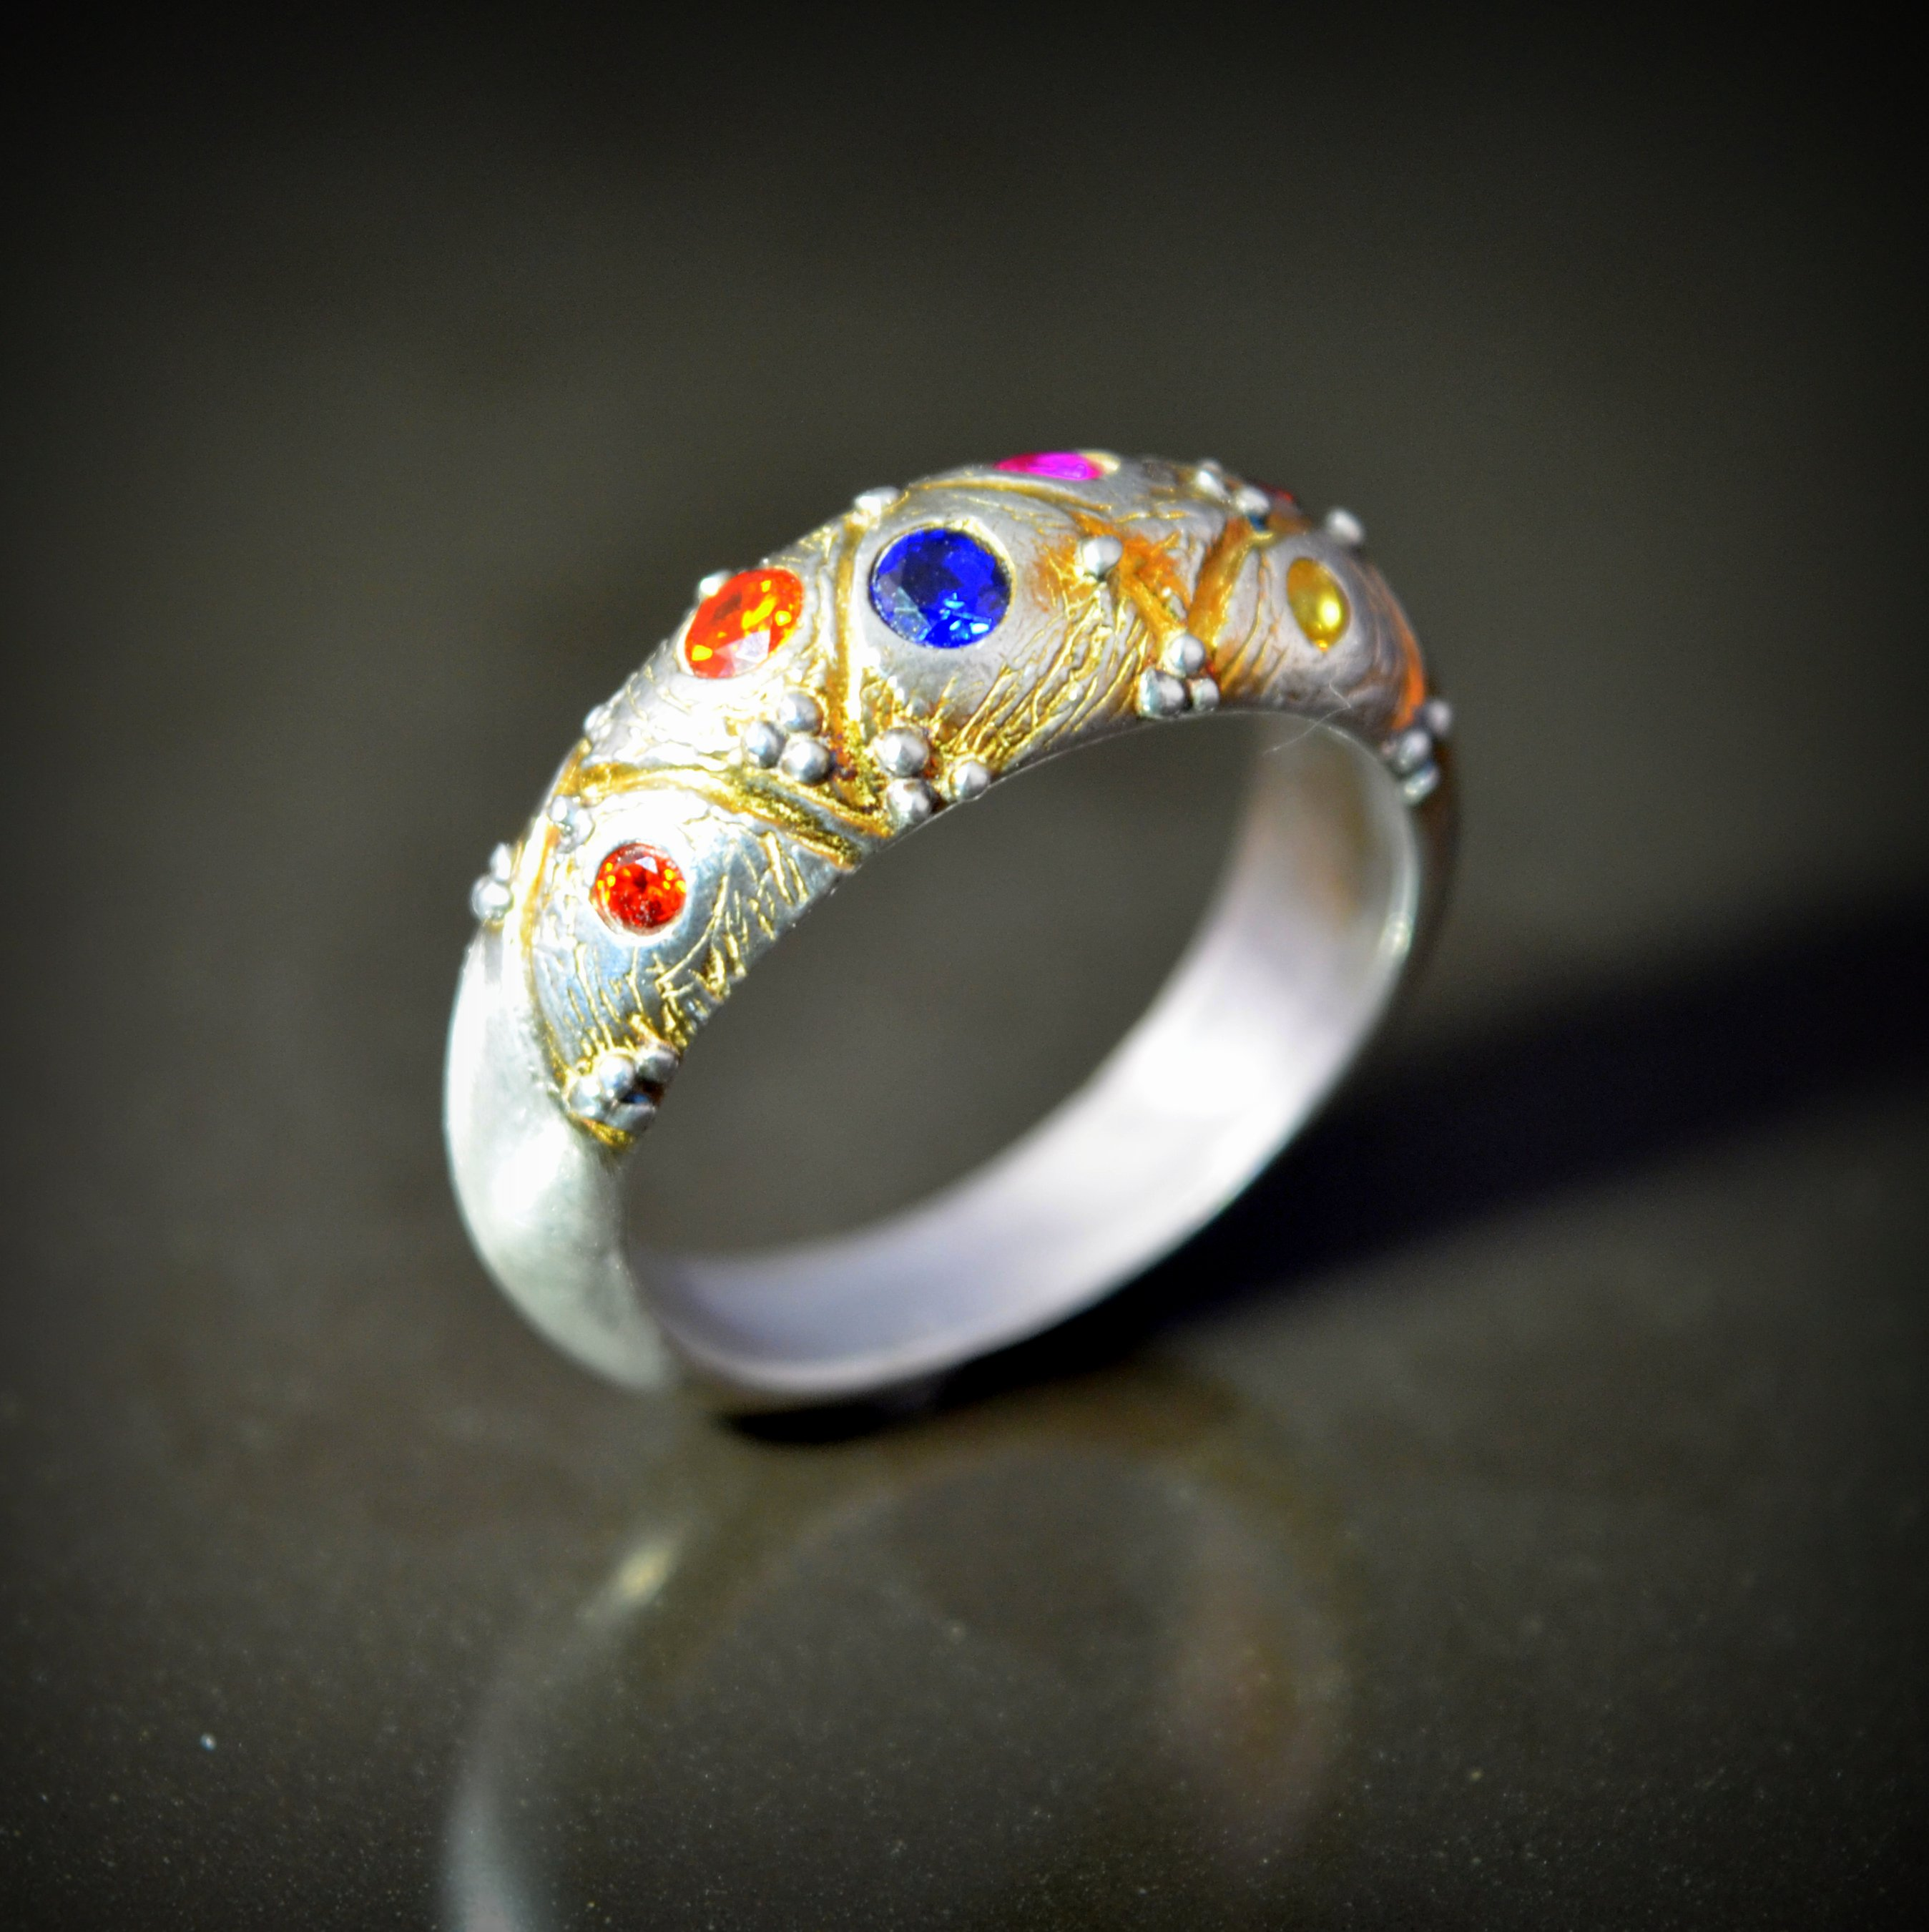 Harlequin Ring by Tracey Spurgin of Craftworx Jewellery Workshops